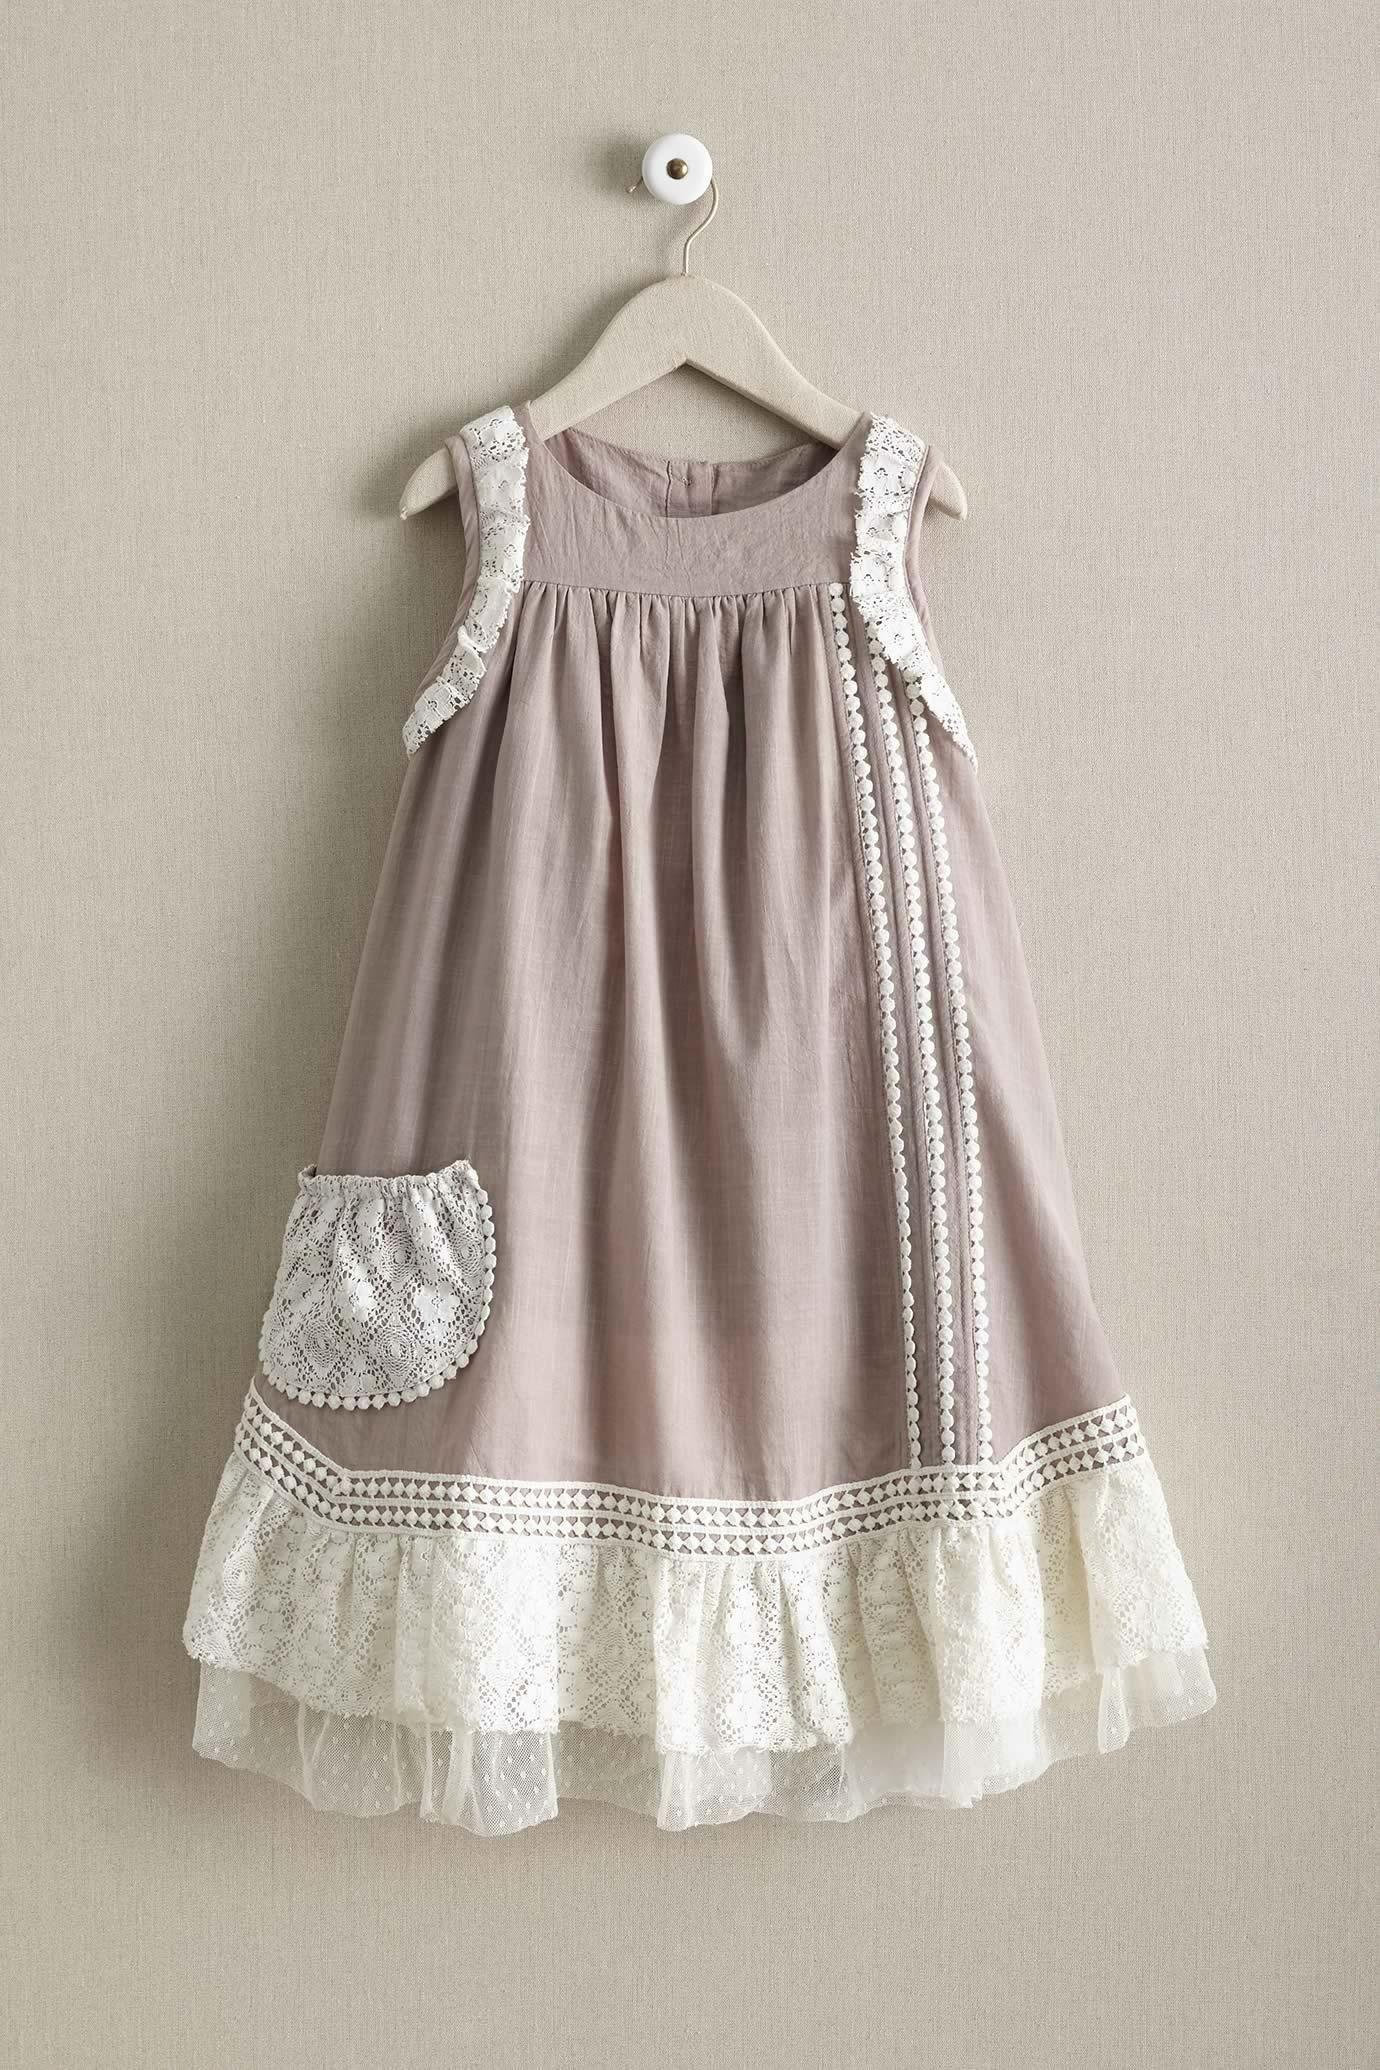 Toddler Baby Girls Vintage Denim Dress Bowknot Princess Lace Trimmed Skirt 1-6Y